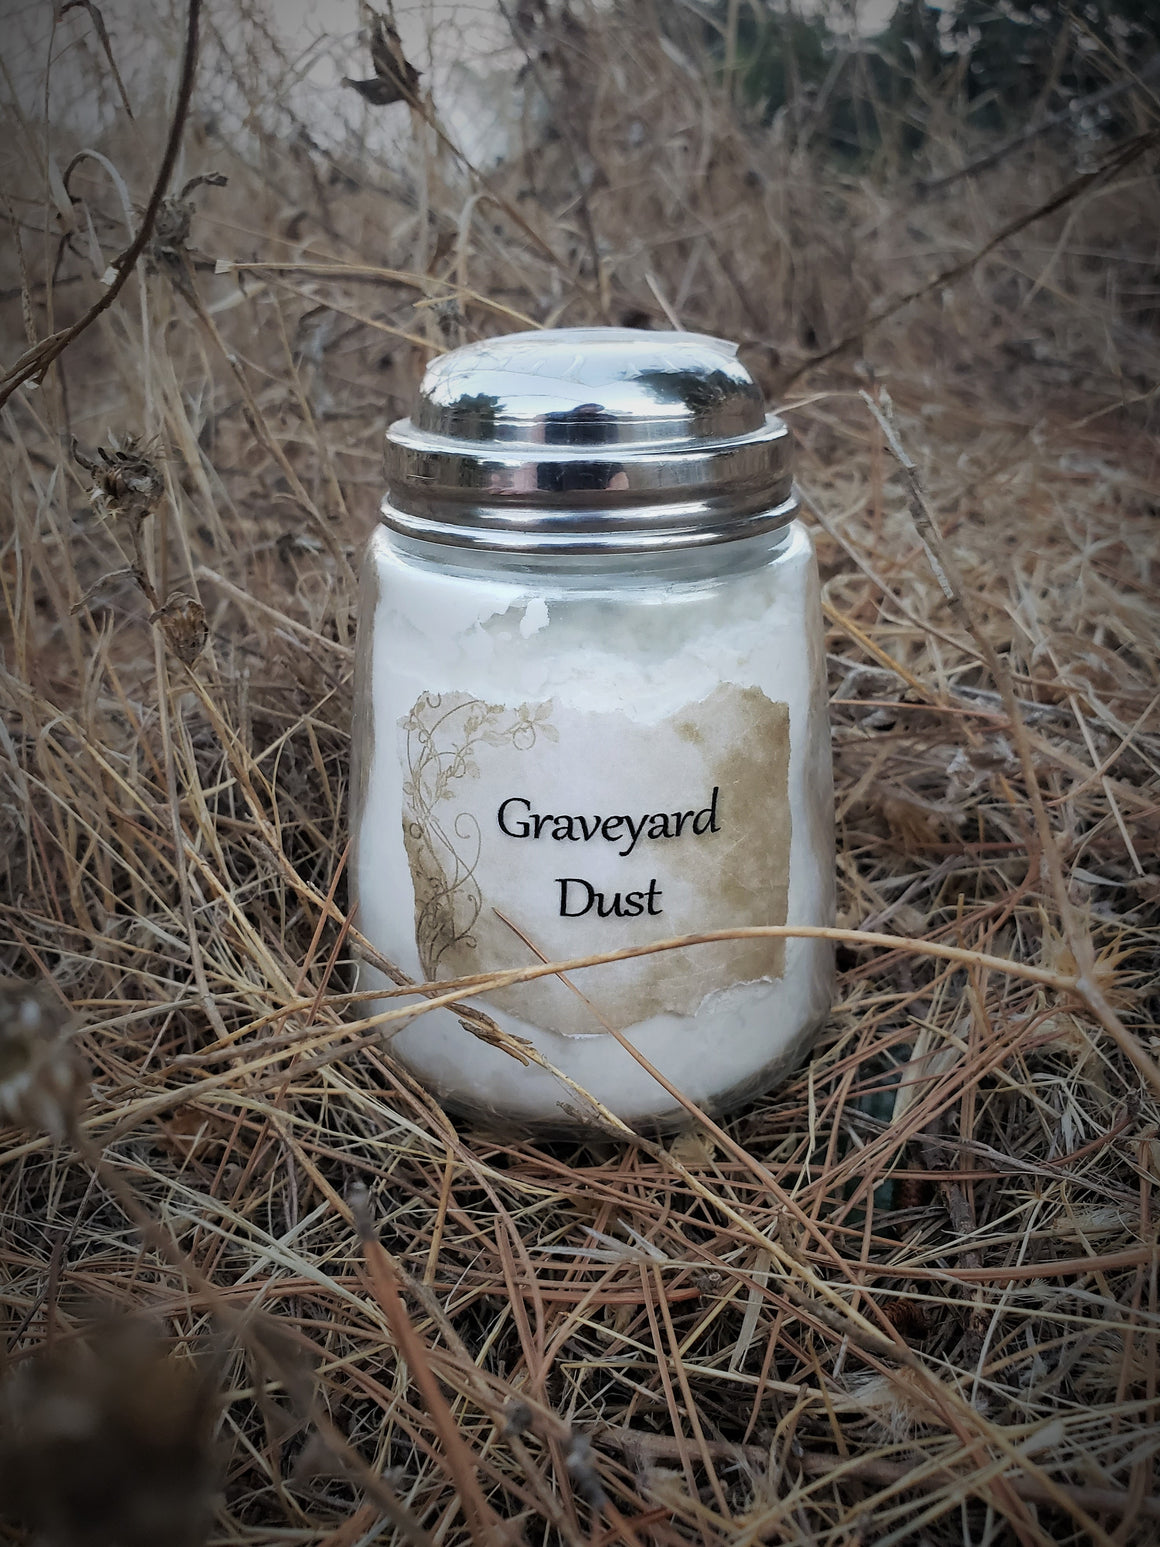 """Graveyard Dust"" Scented Talc Free Body Powder in a Vintage Shaker Jar"